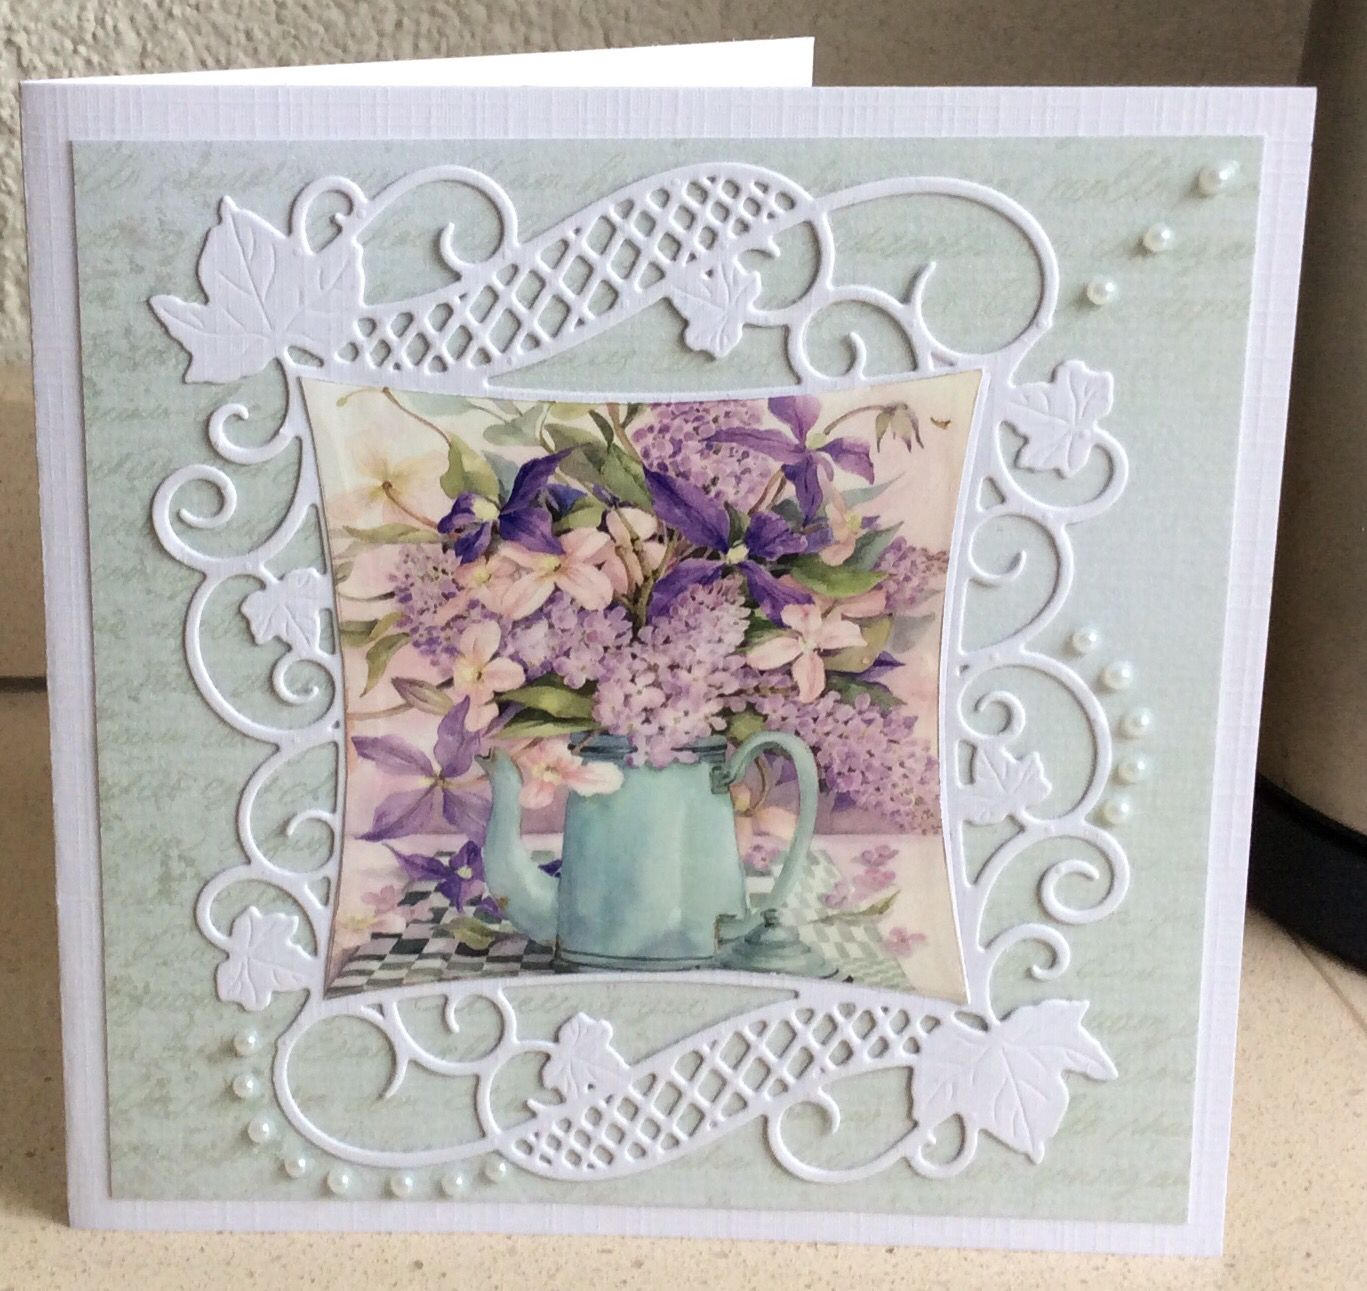 Pin by terese granlund on kort pinterest cards card ideas and spellbinders cards thanksgiving cards homemade cards sue wilson greeting card card ideas card sentiments congratulations card diy cards kristyandbryce Choice Image